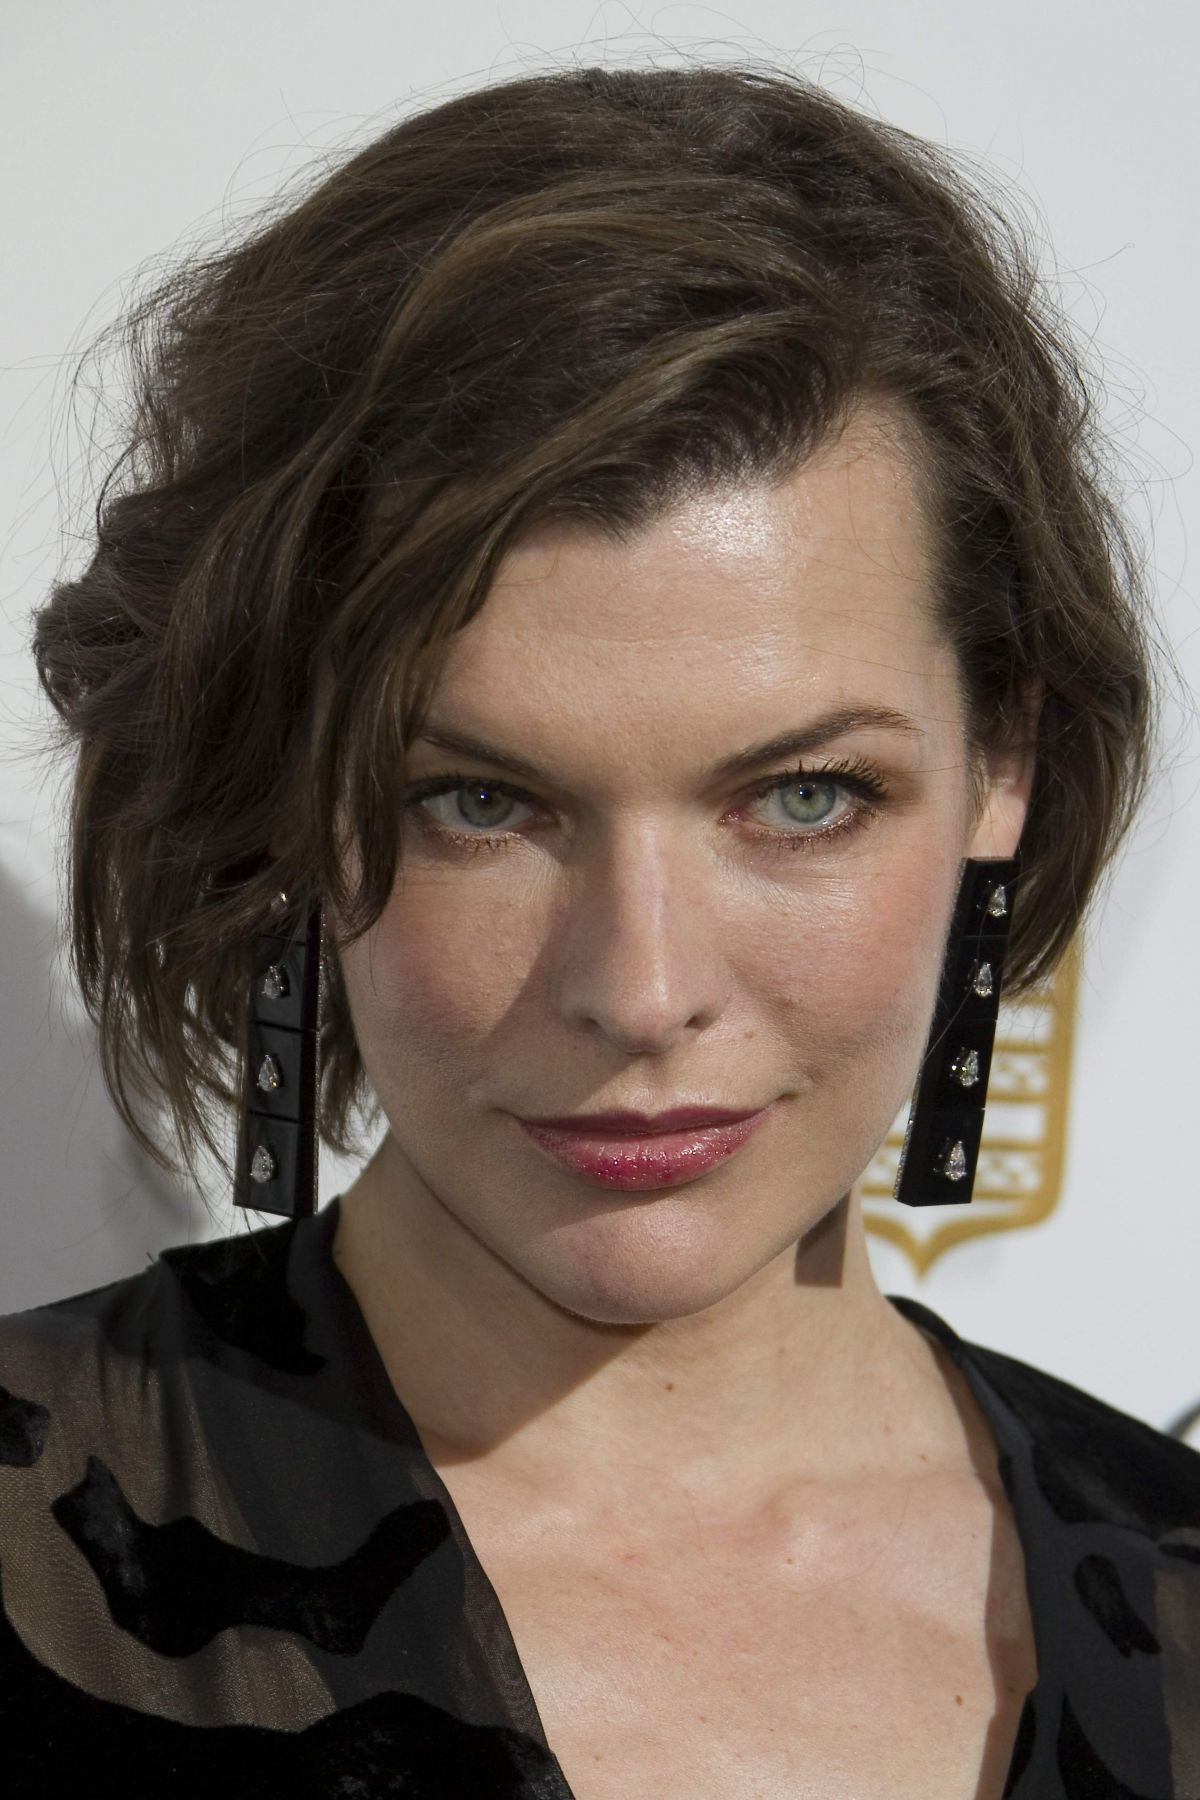 Milla Jovovich revealed her secret to looking younger